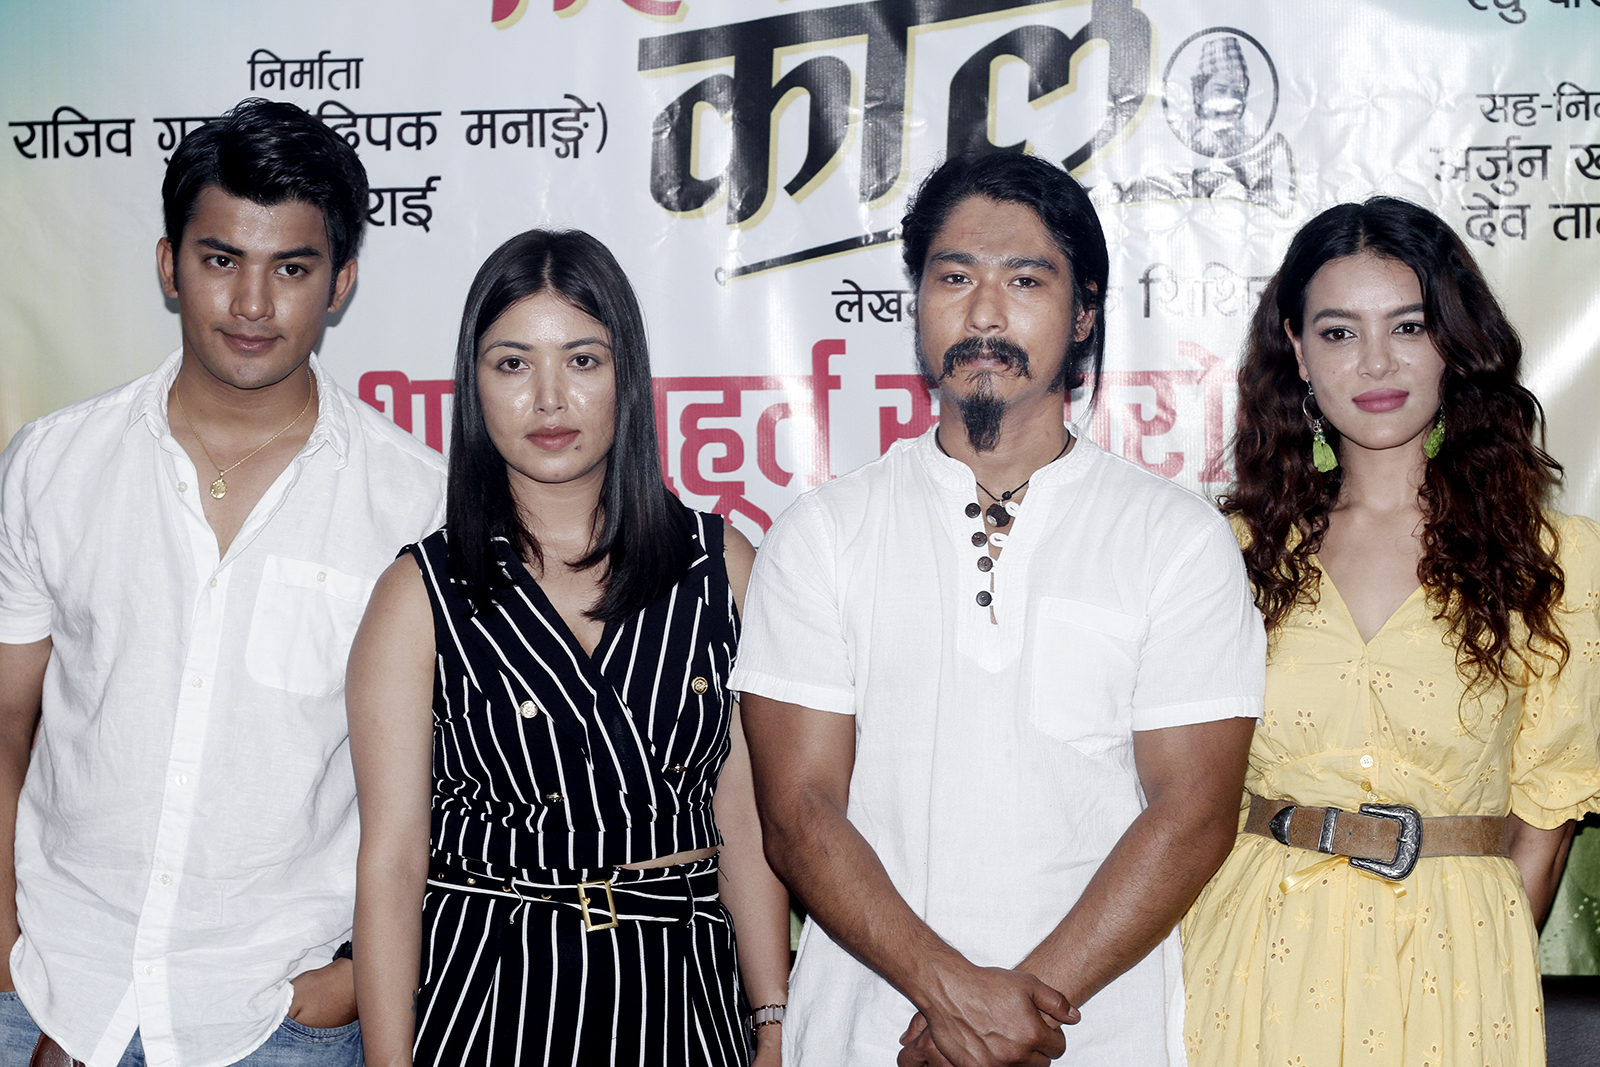 Saugat Malla and Shristi Shrestha pairs for 'Poi Paryo Kale'